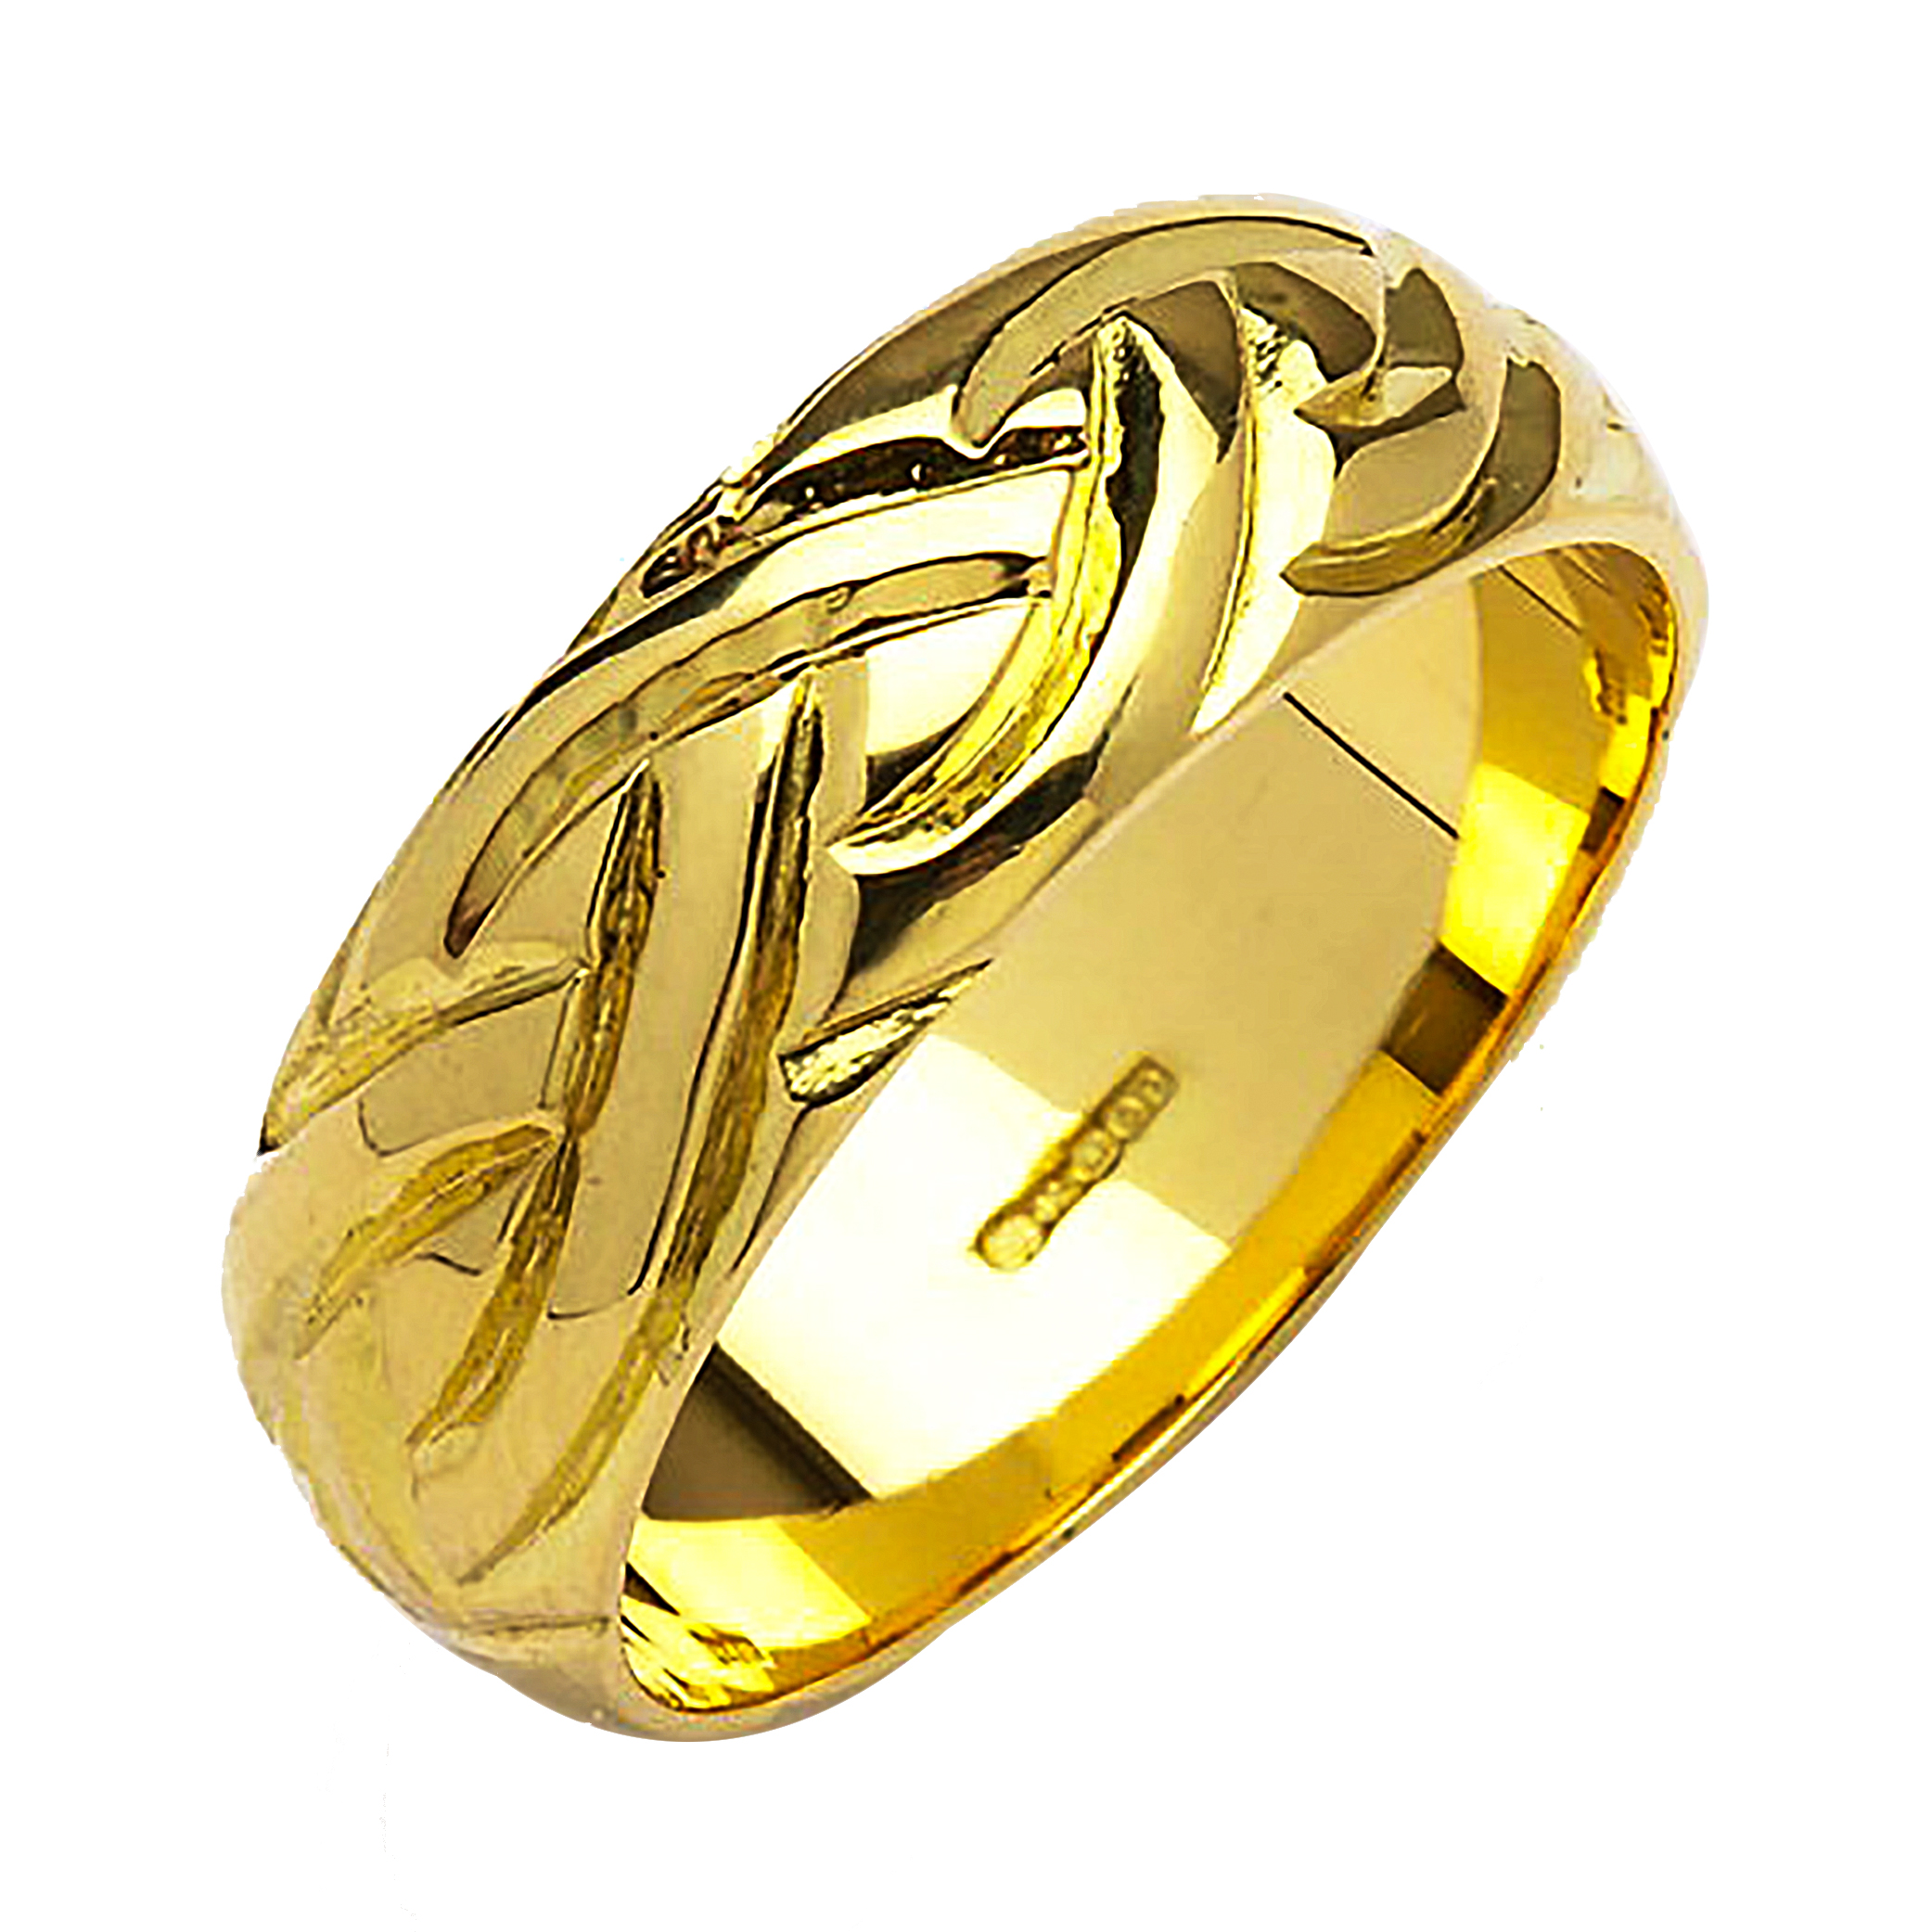 yellow jewelry ring gold quartz in gallery bands product smokey smoky lyst cocktail gucci horsebit